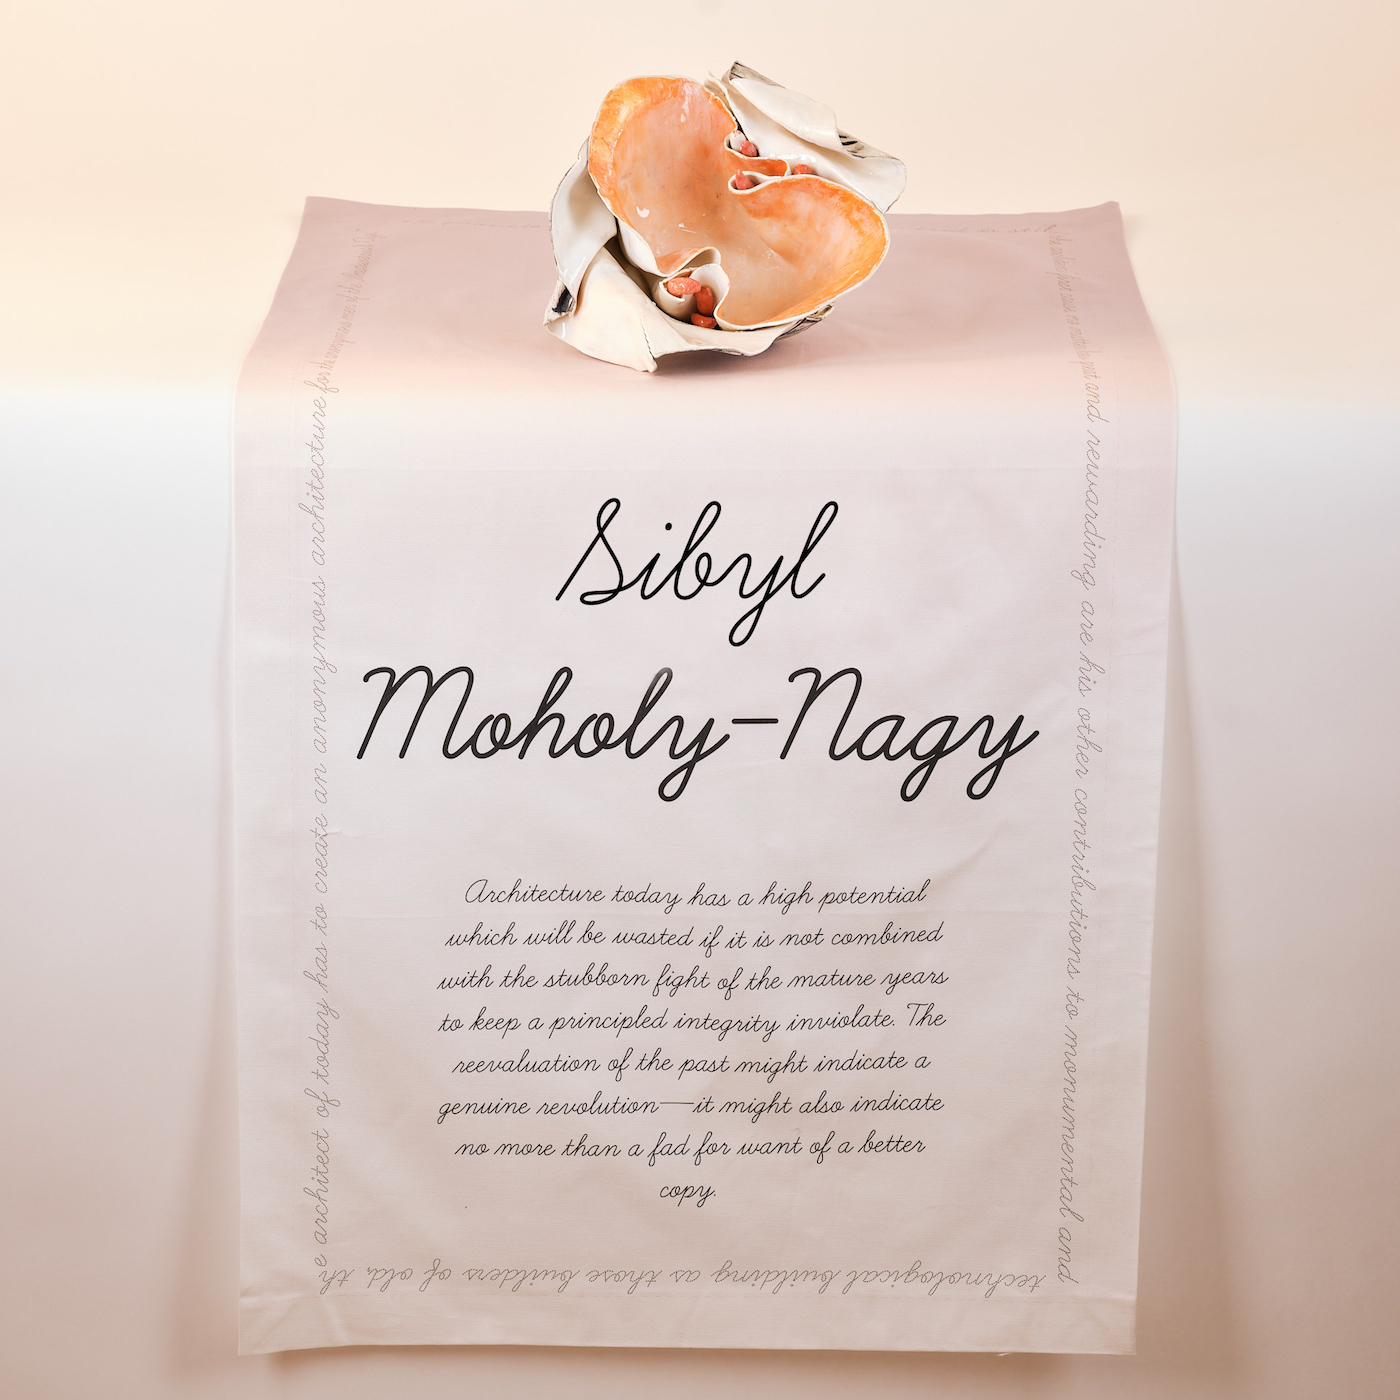 Mistresses of Pratt place setting for Sibyl Moholy-Nagy (photo by Adam Elstein)